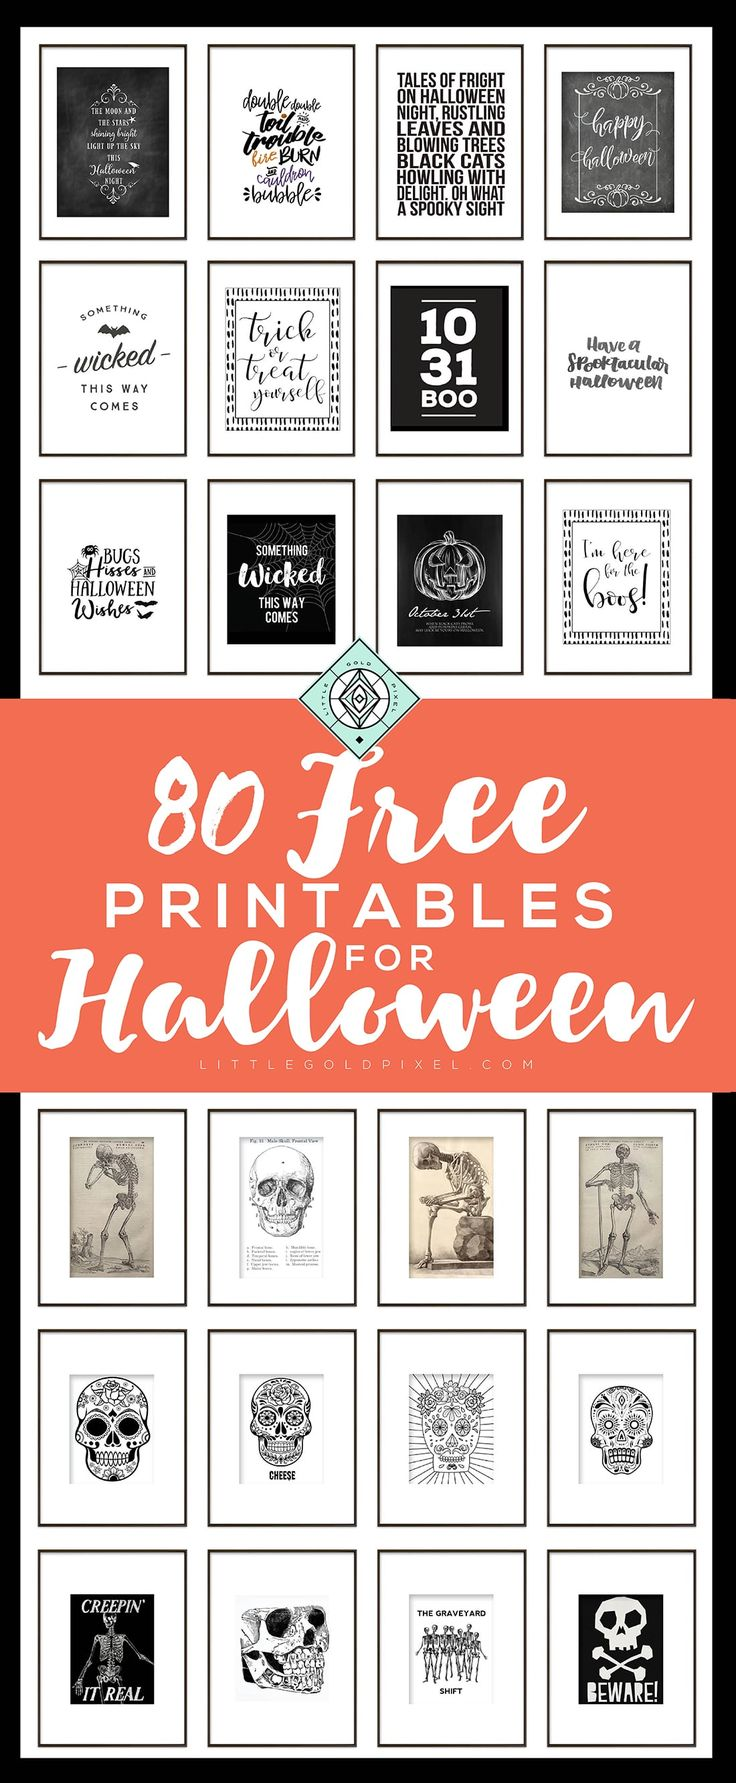 Last-Minute Decor: Halloween Free Printables Vol. 3 • Little Gold Pixel • Bookmark and save for your Halloween decor!